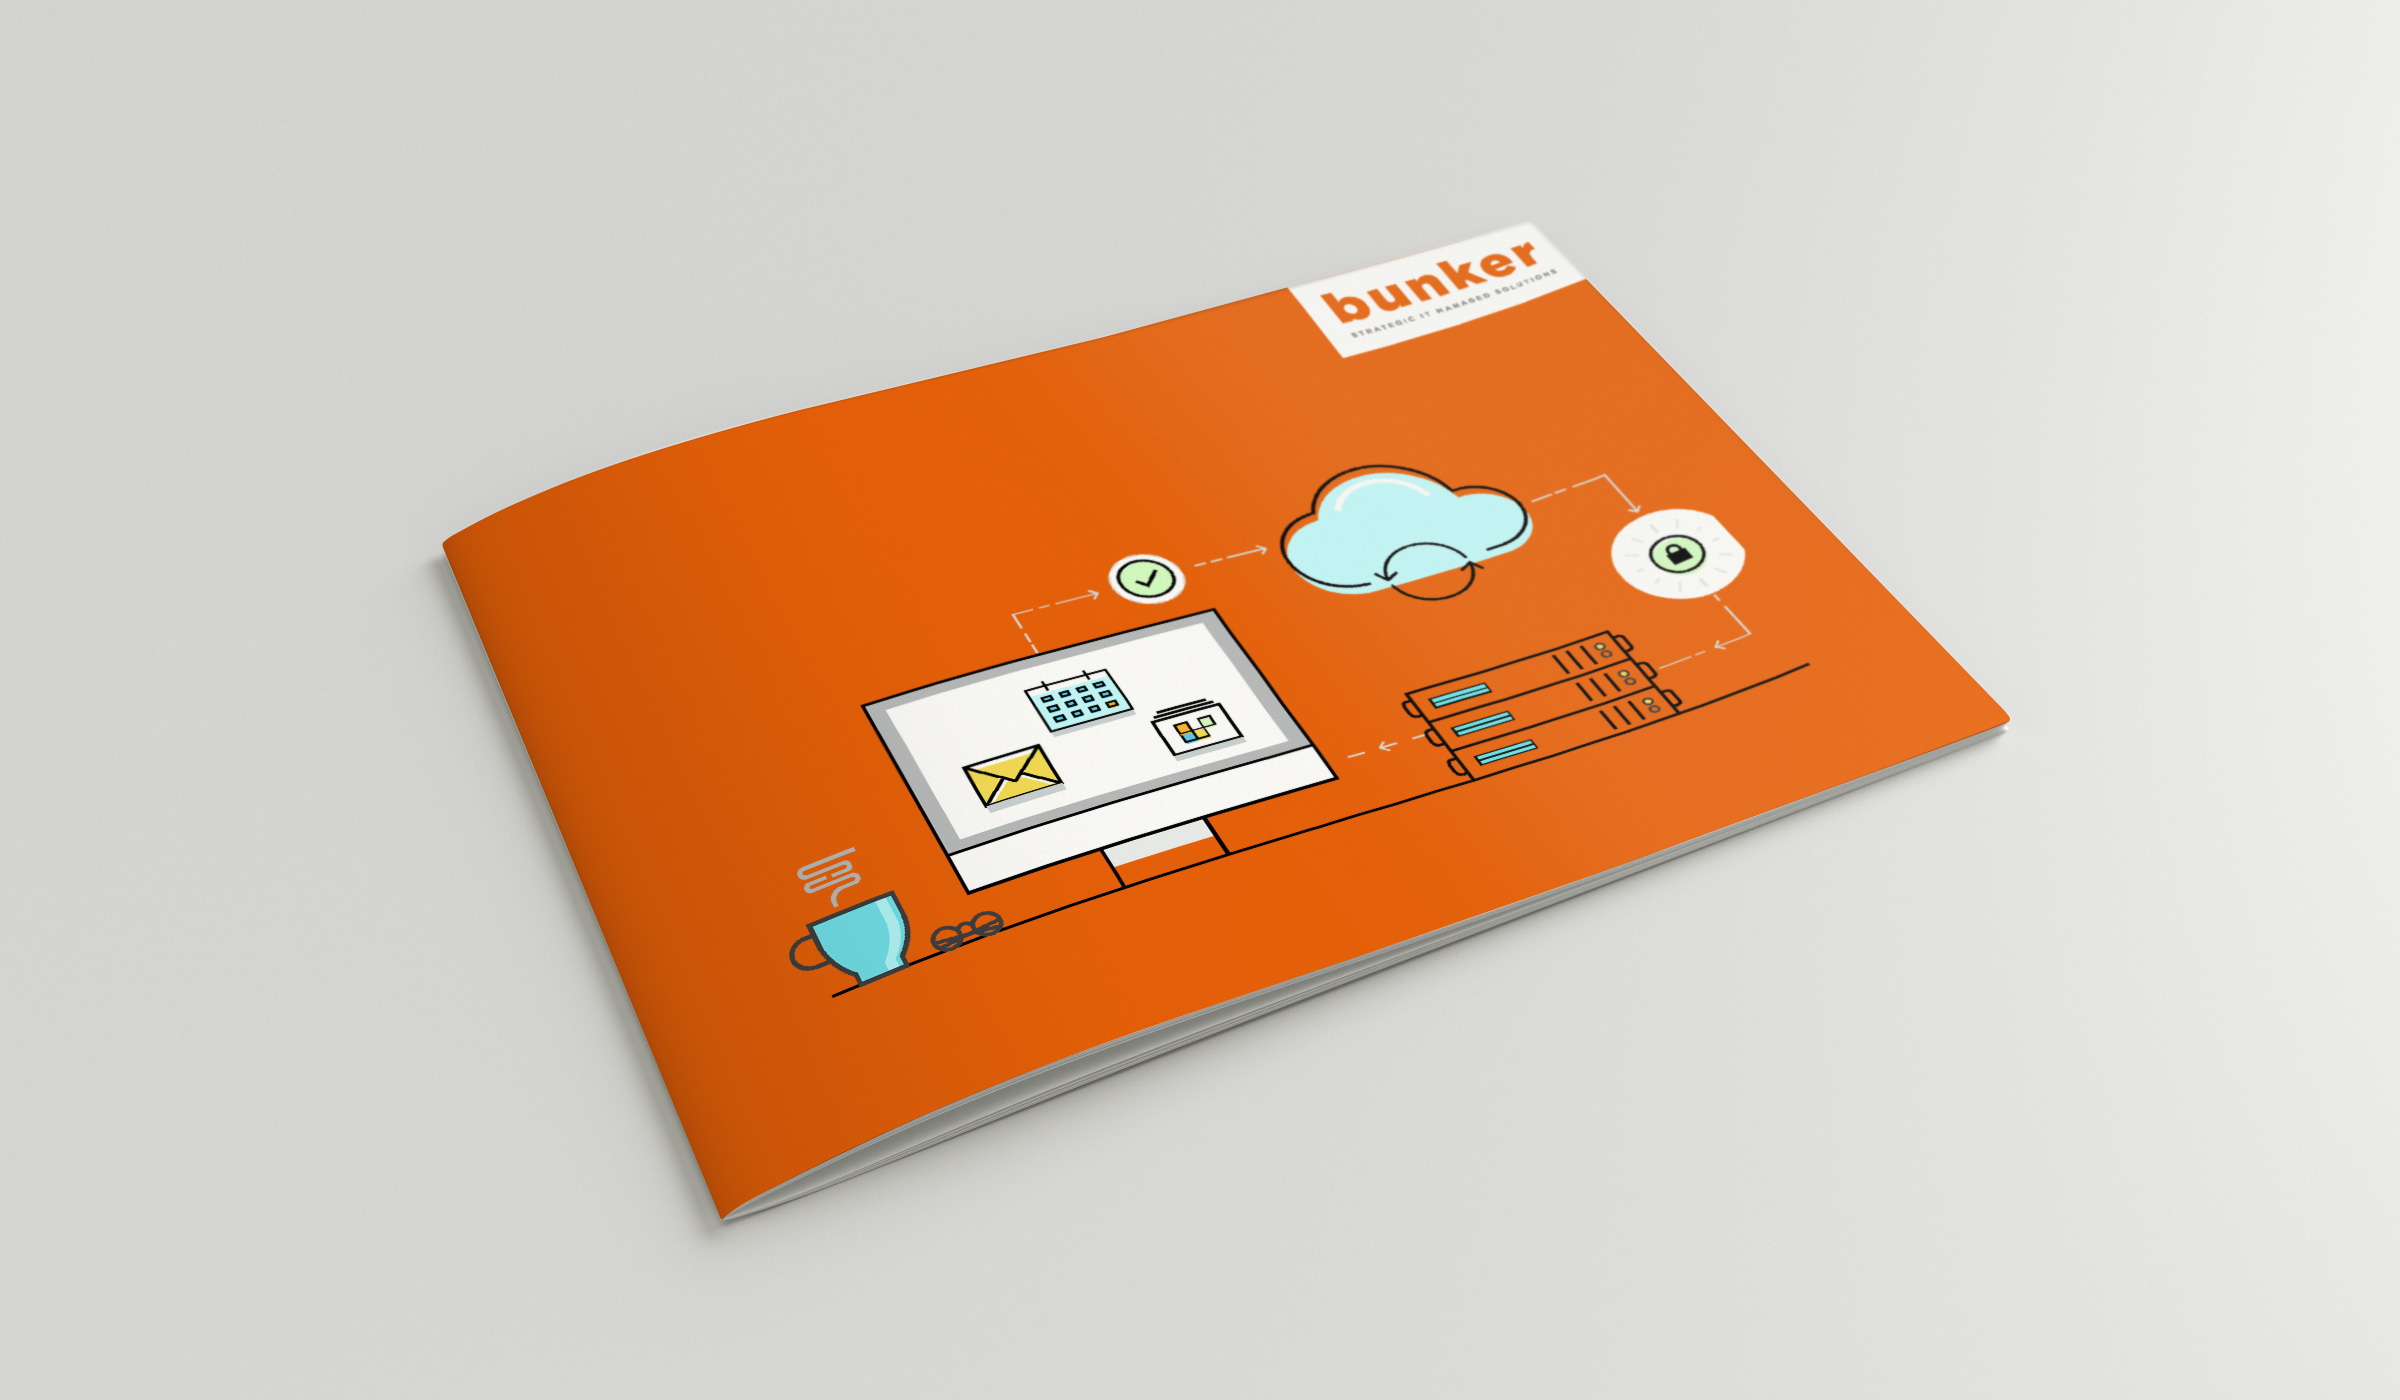 disaster-recovery-eBook-mockup